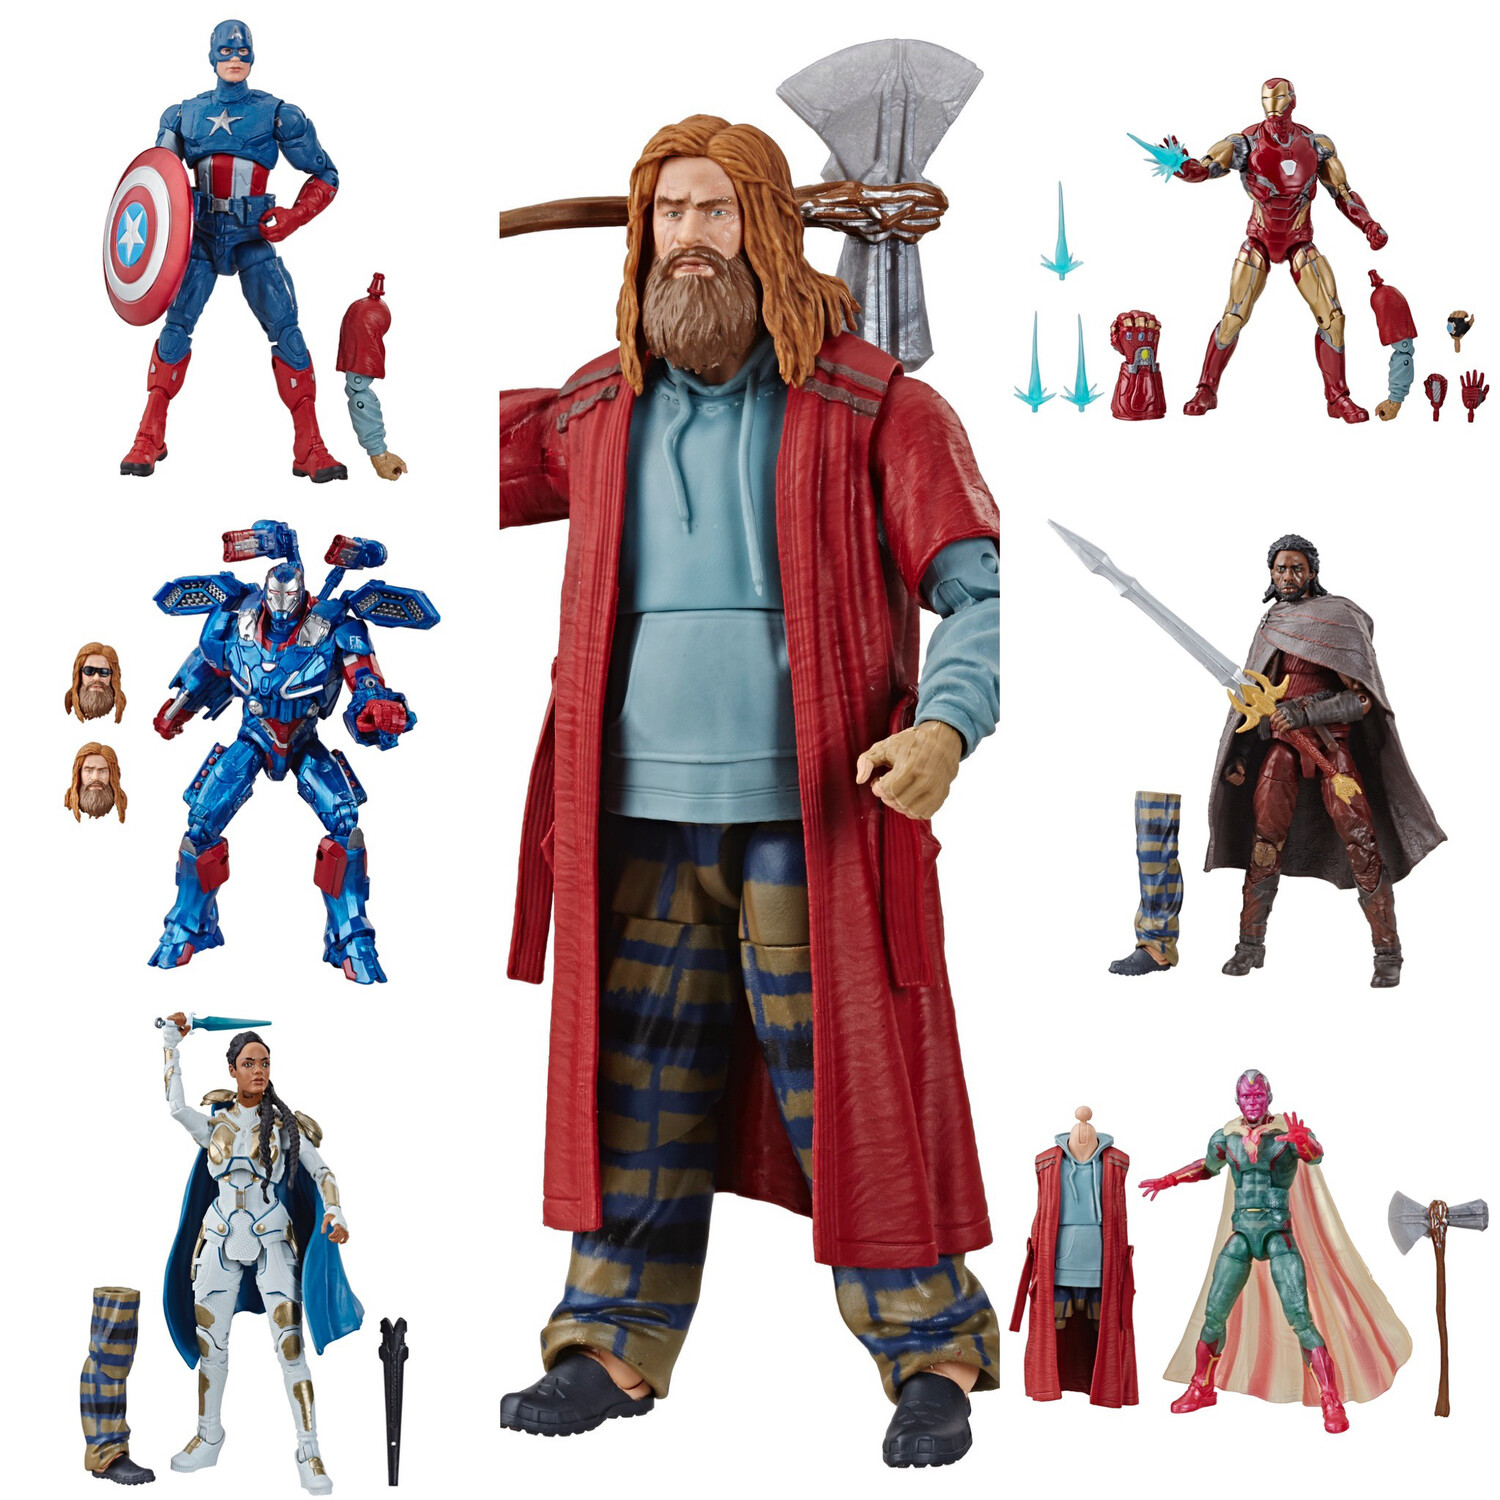 Endgame Marvel Legends Wave 3 Set of 6 Figures Avengers preorder Thor BAF